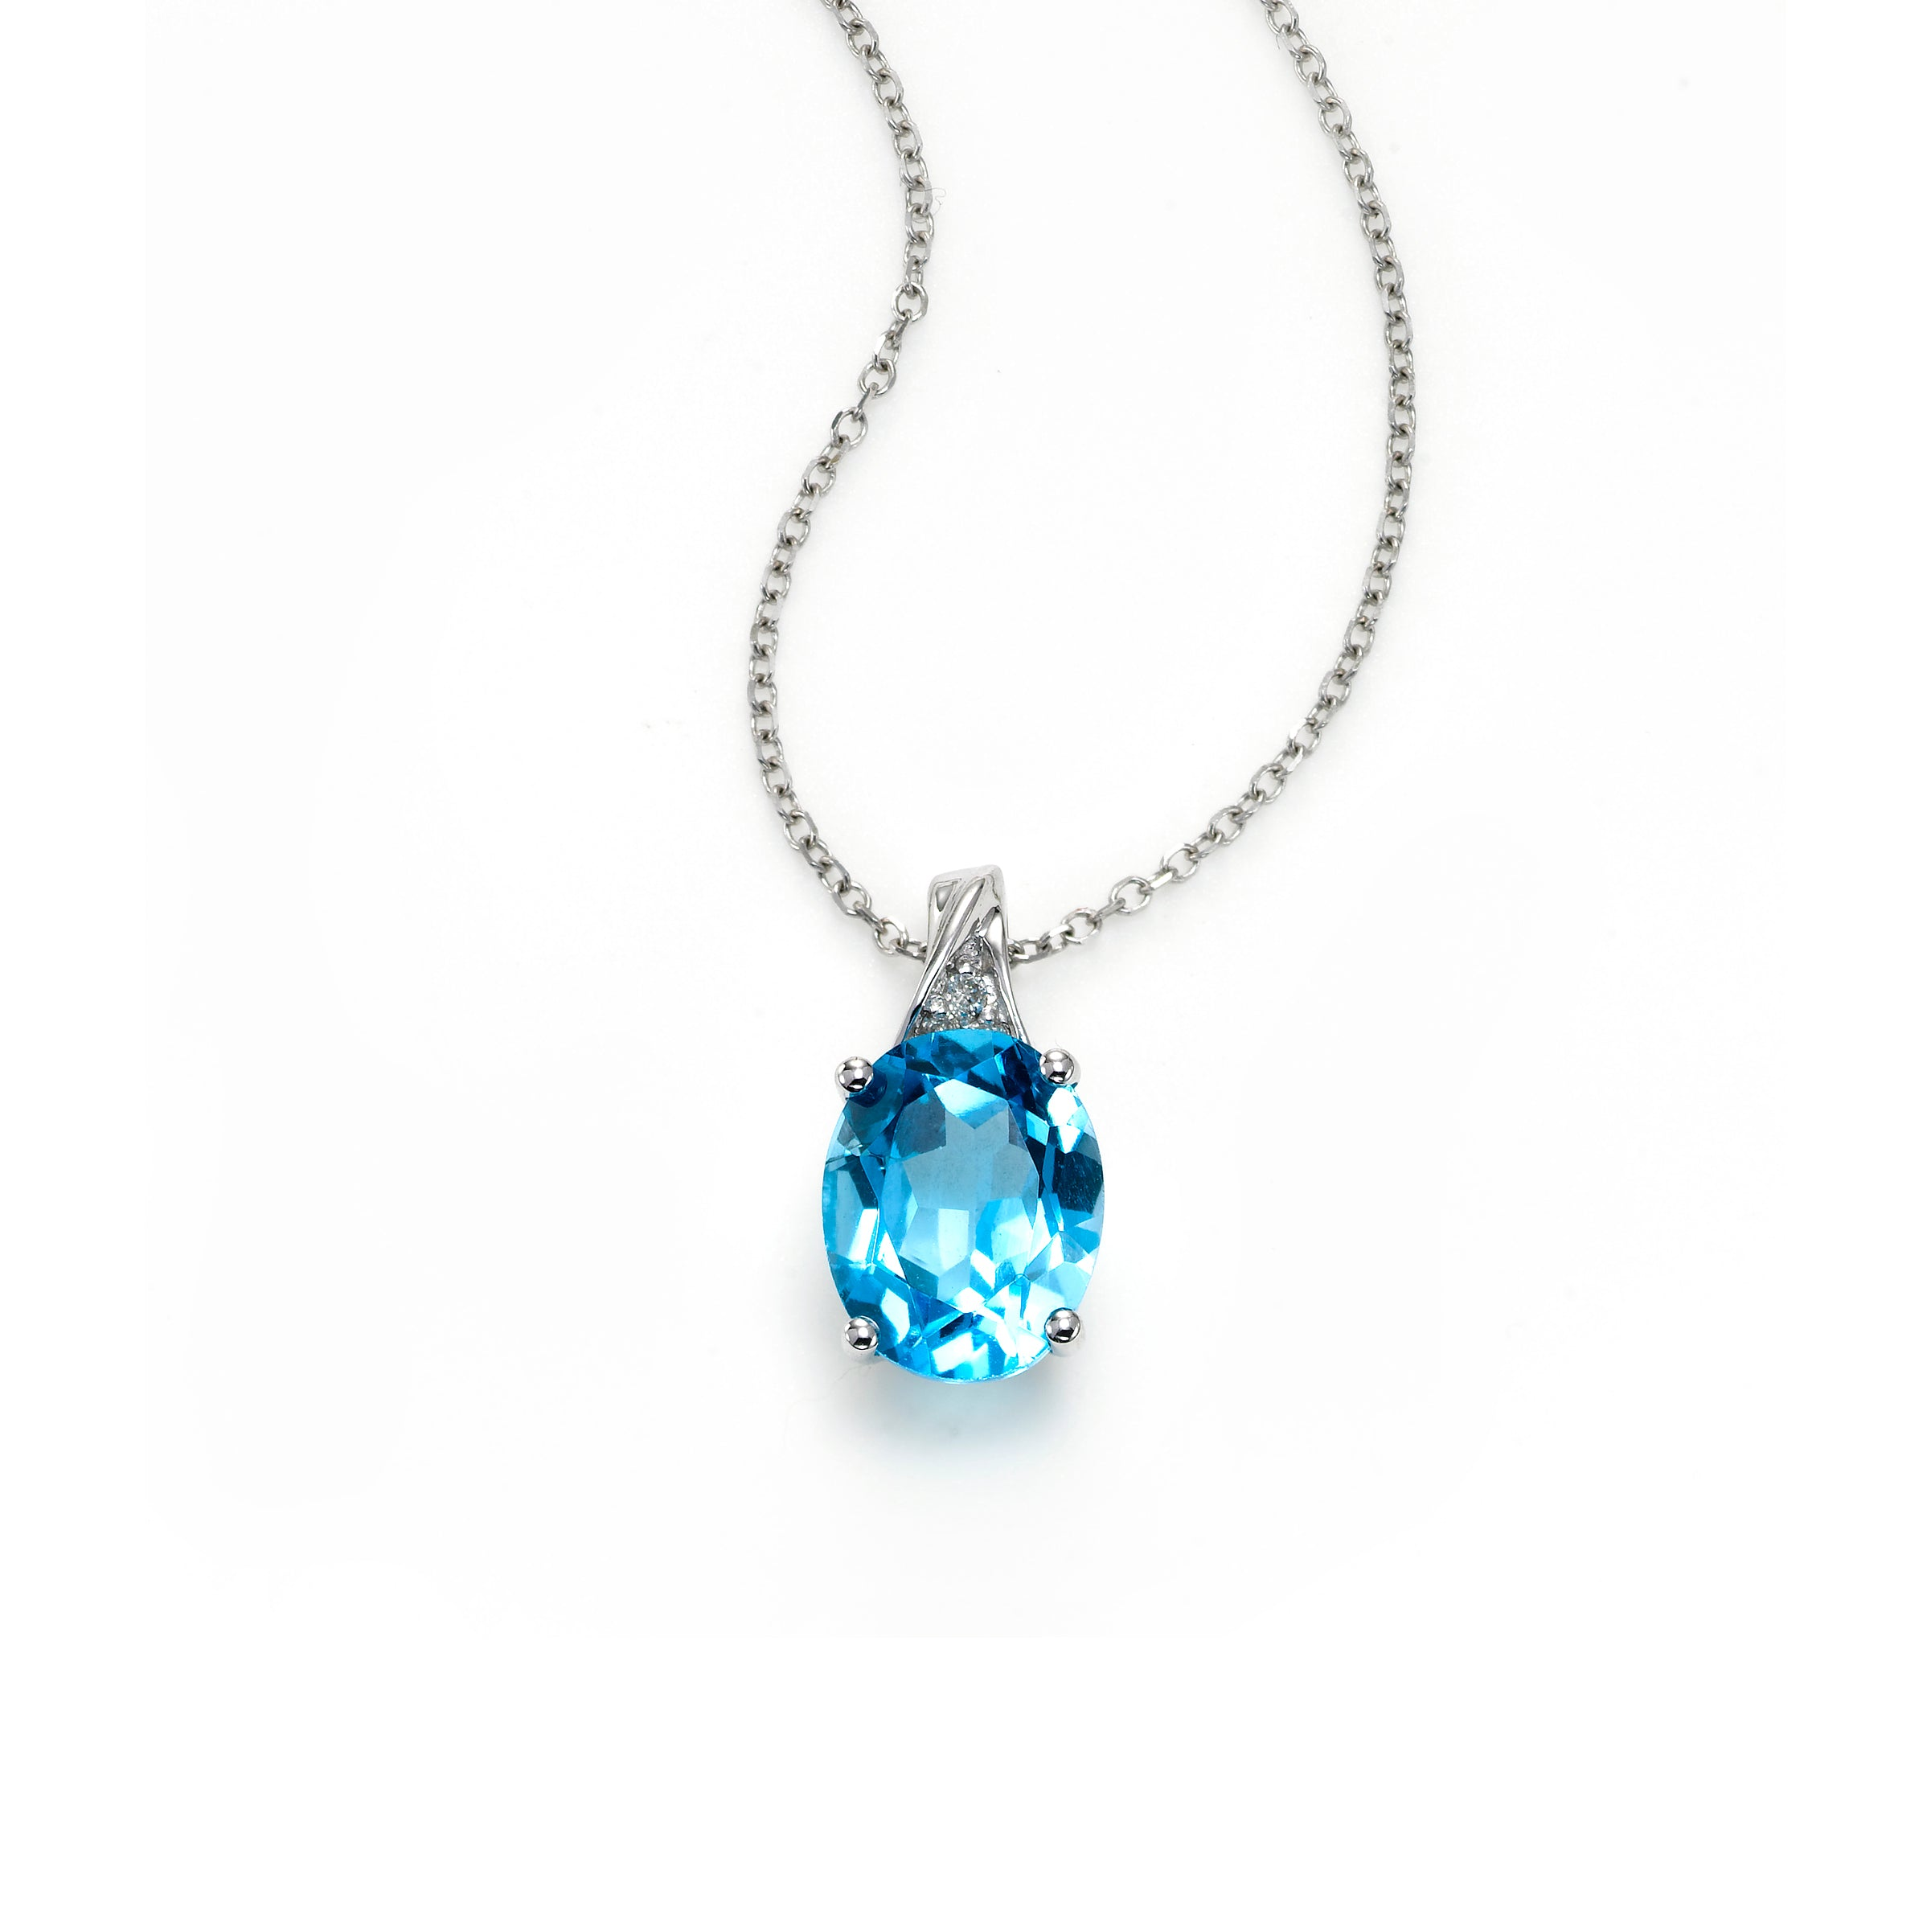 Oval Blue Topaz Pendant with Diamond Accent, 14K White Gold